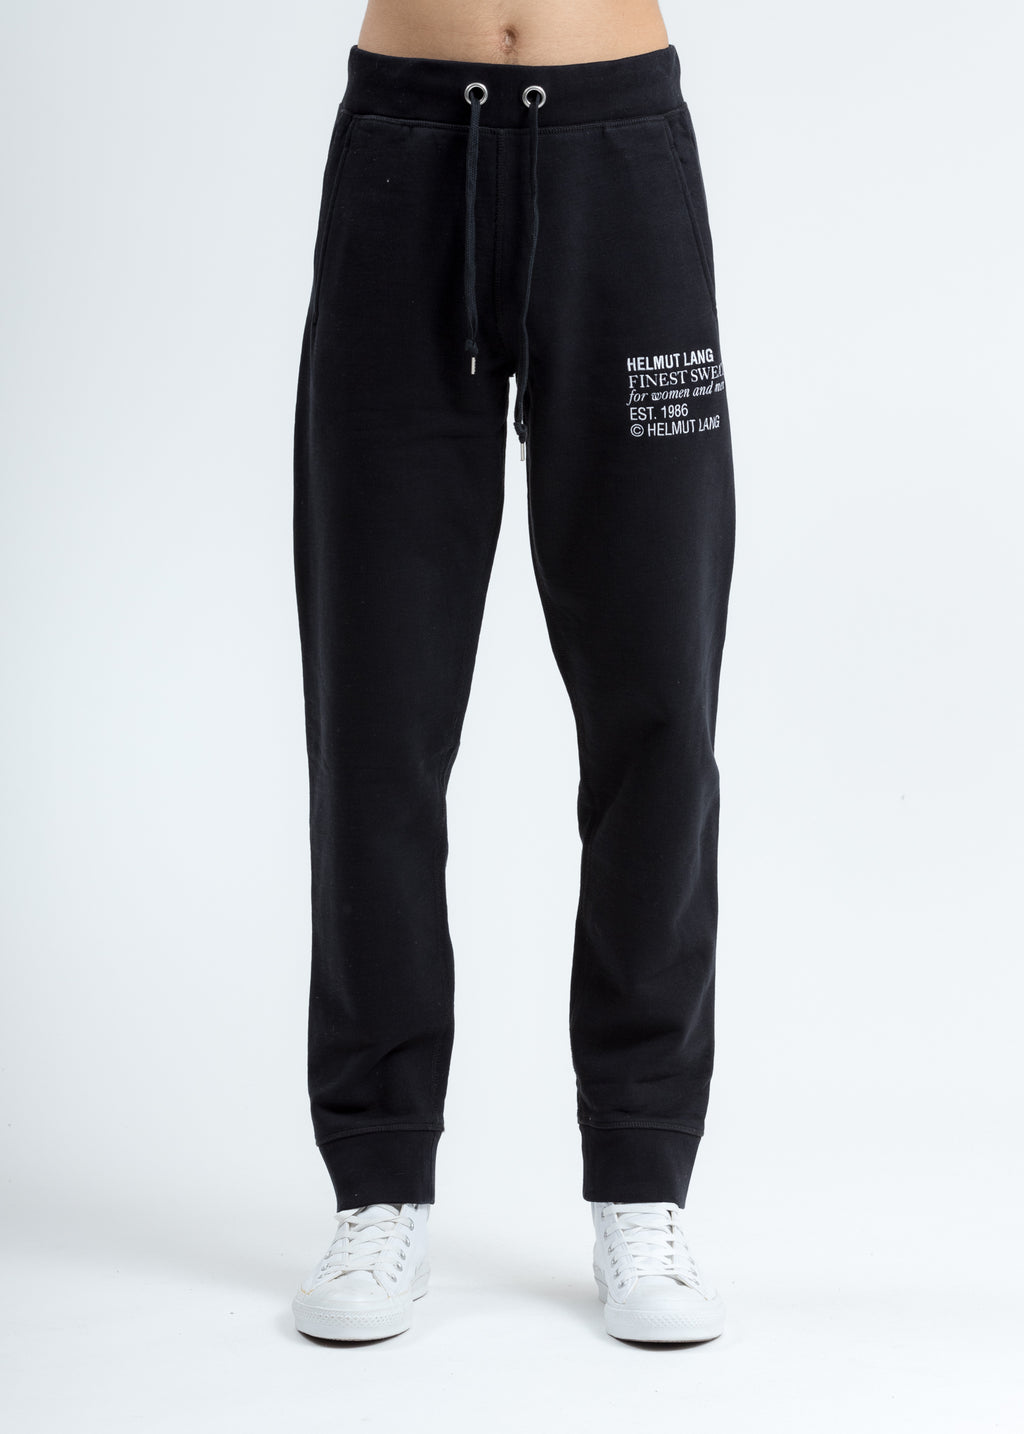 Black Finest Masc Sweat Pants